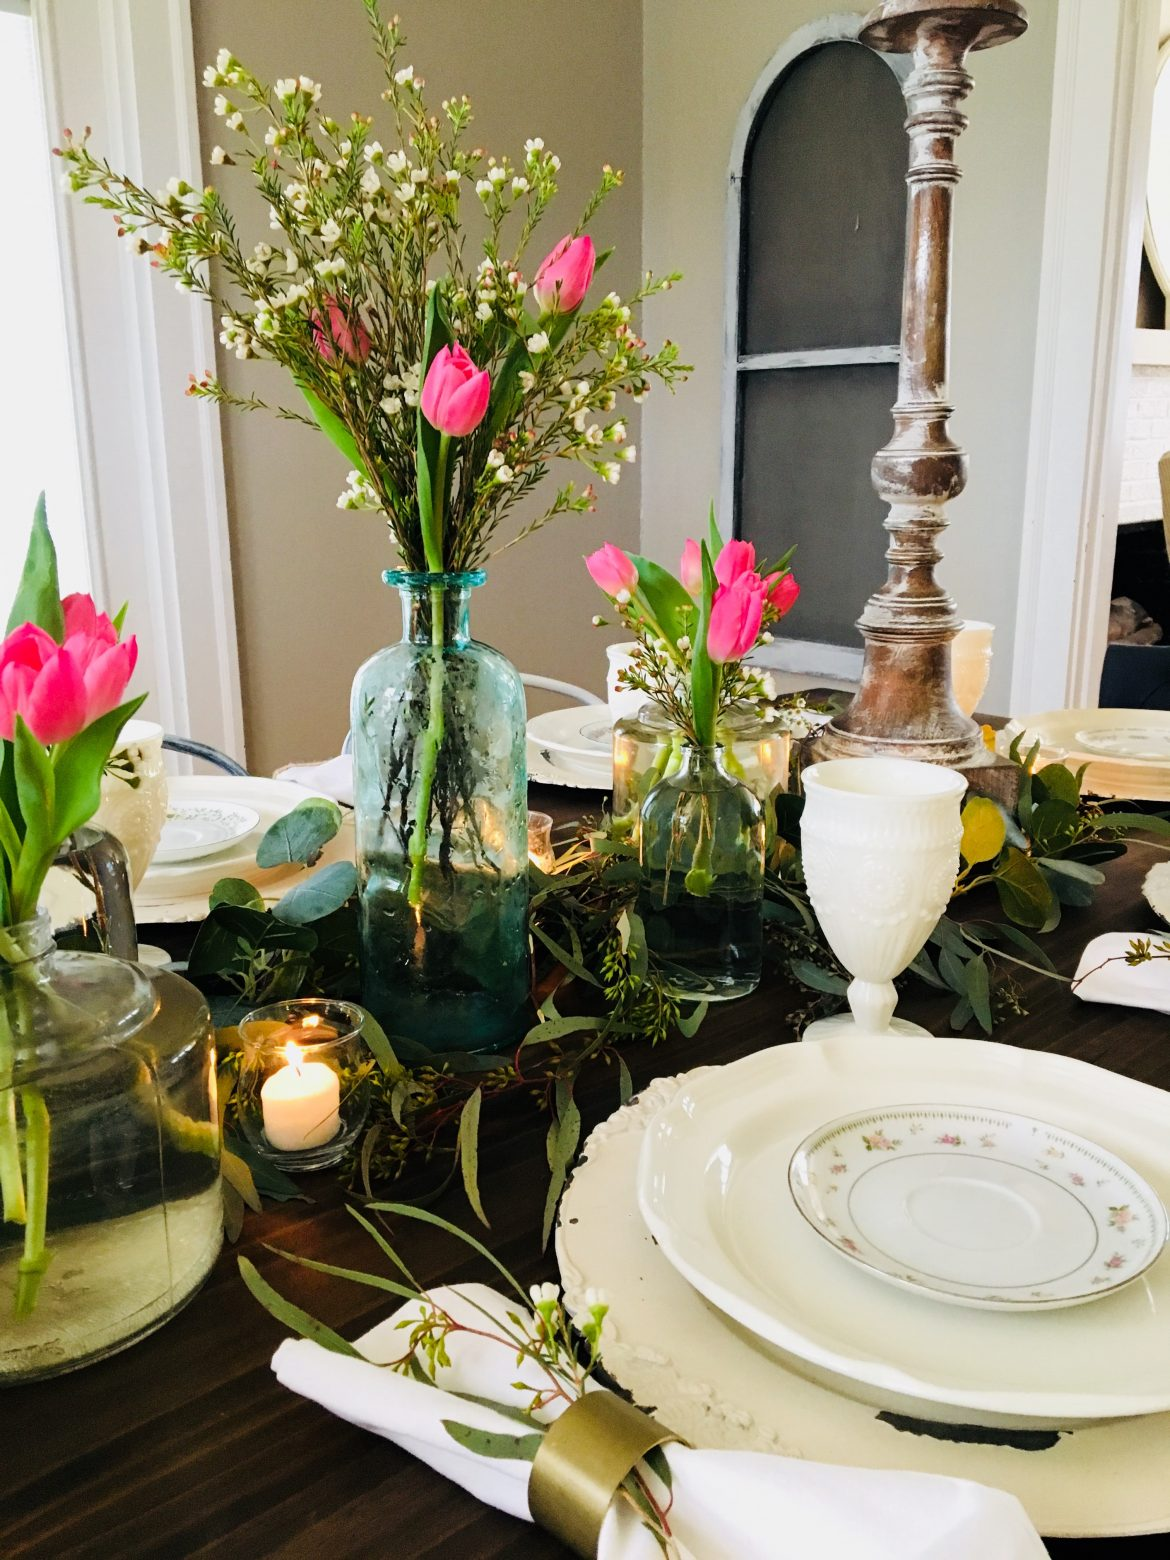 Six tips on setting the ultimate Easter tablescape!